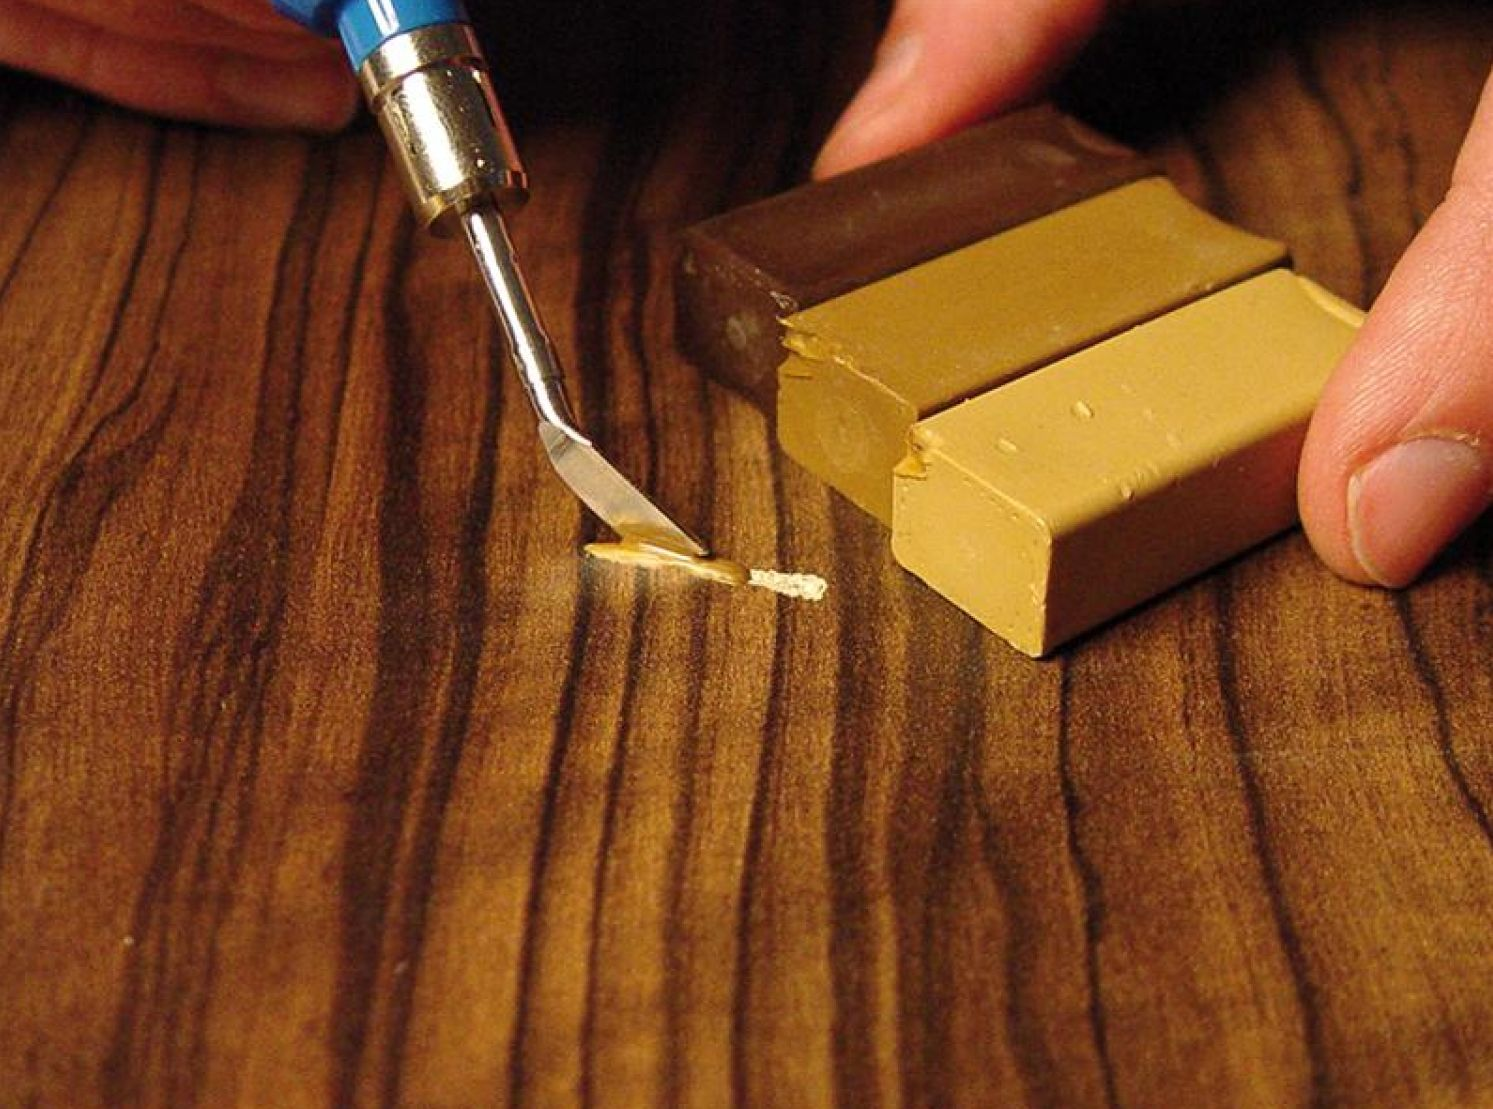 What is wax used for laminate?